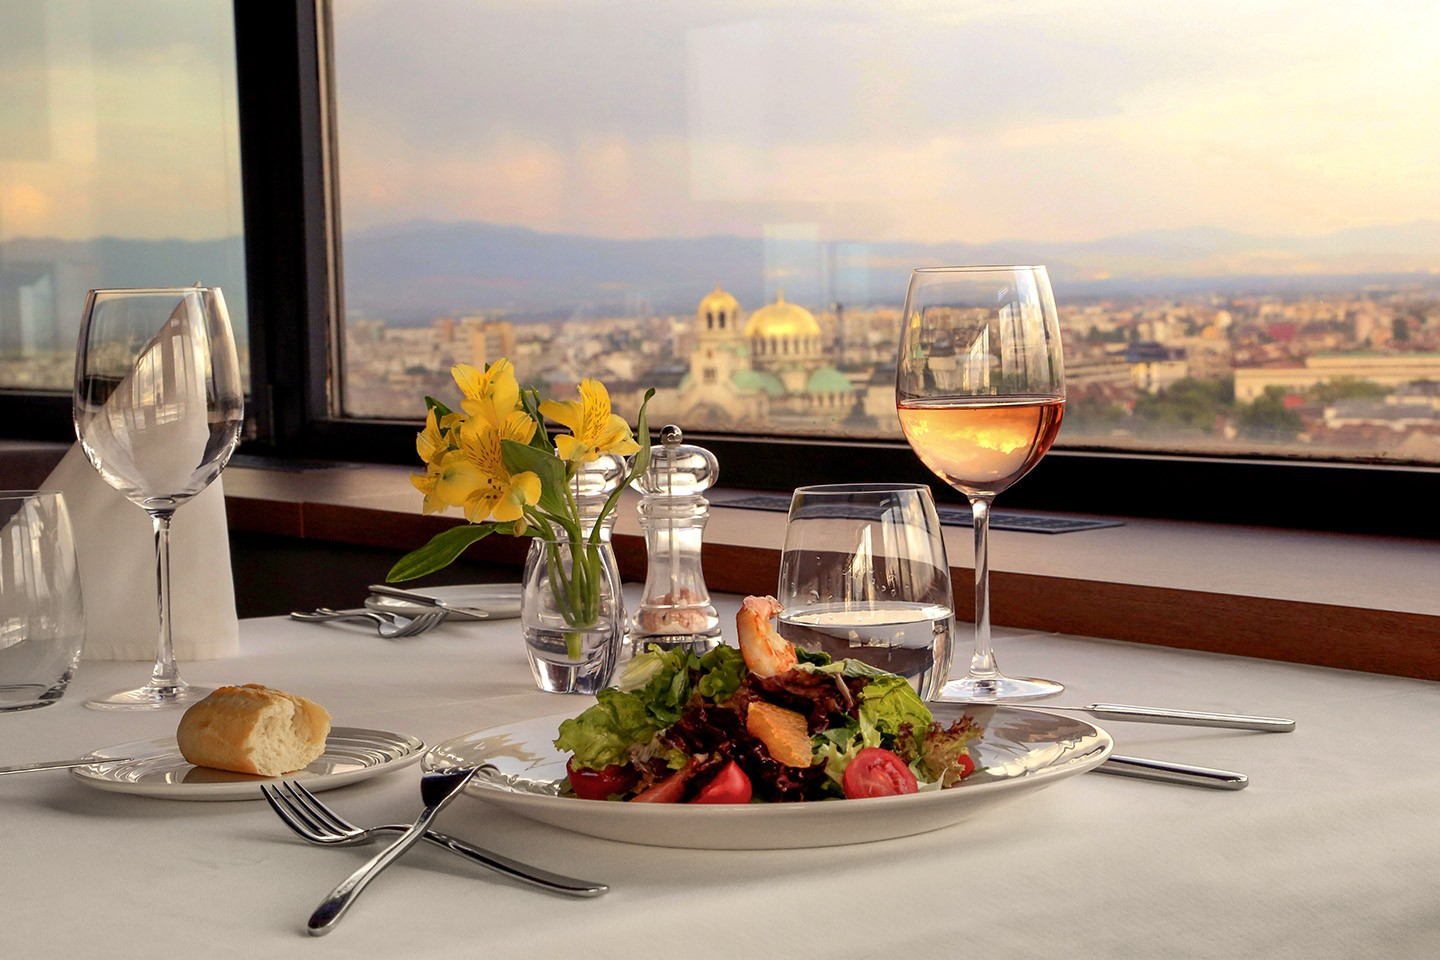 Food and wine at a restaurant in the foreground and a view of the city Sofia in the background